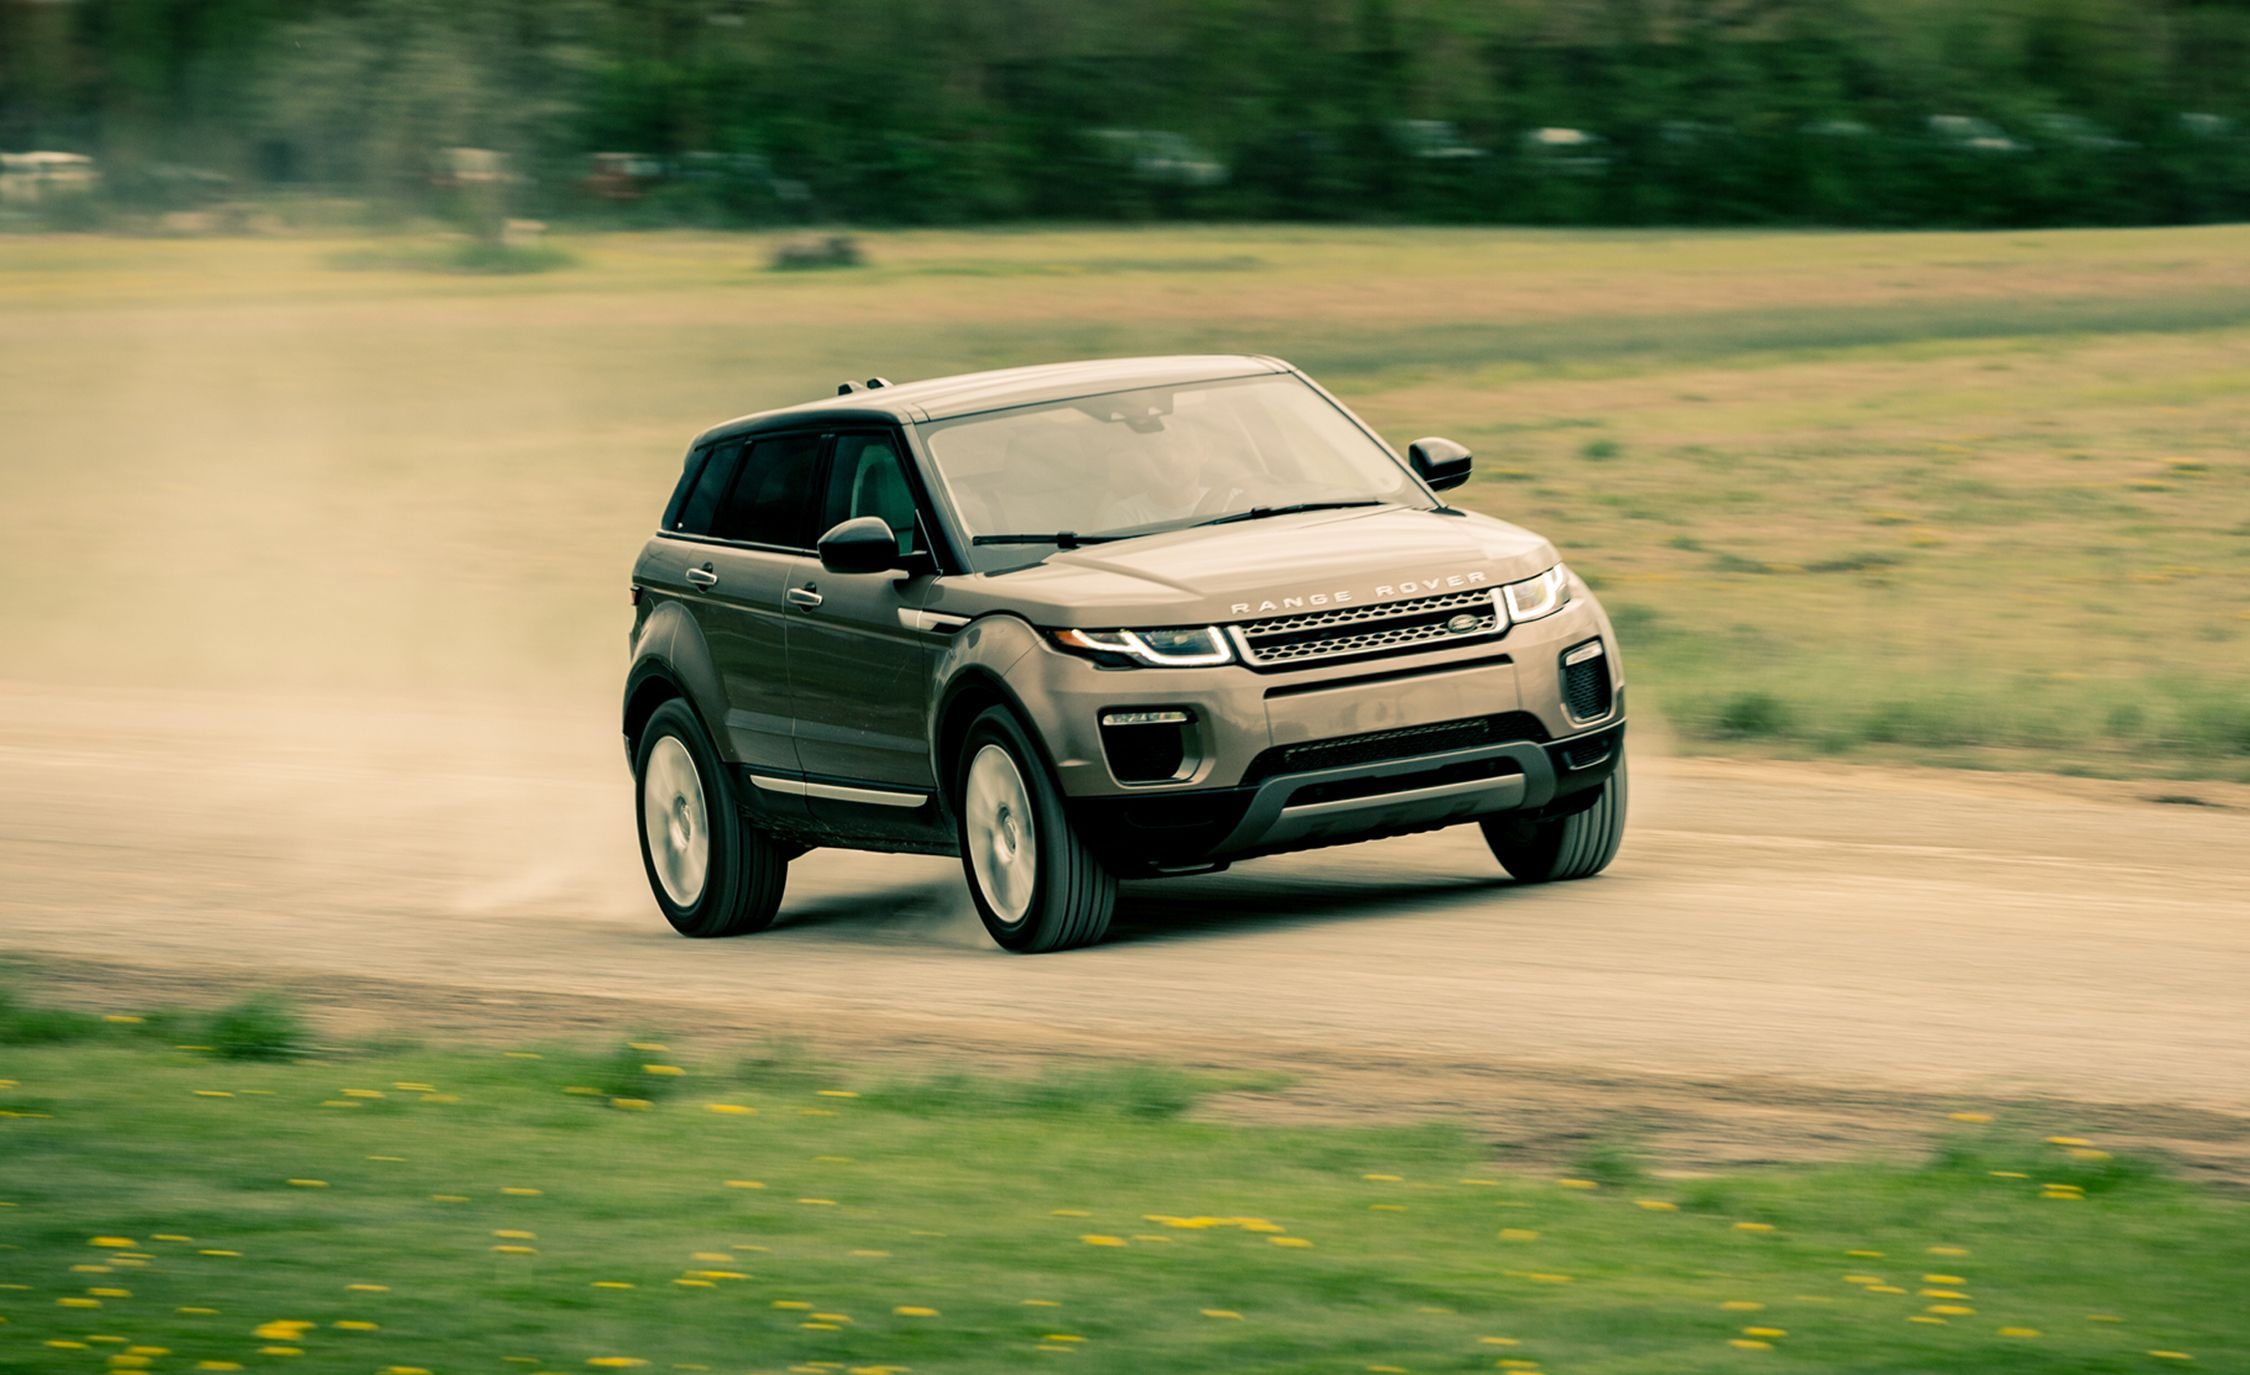 2017 Range Rover Evoque Test Review Car And Driver